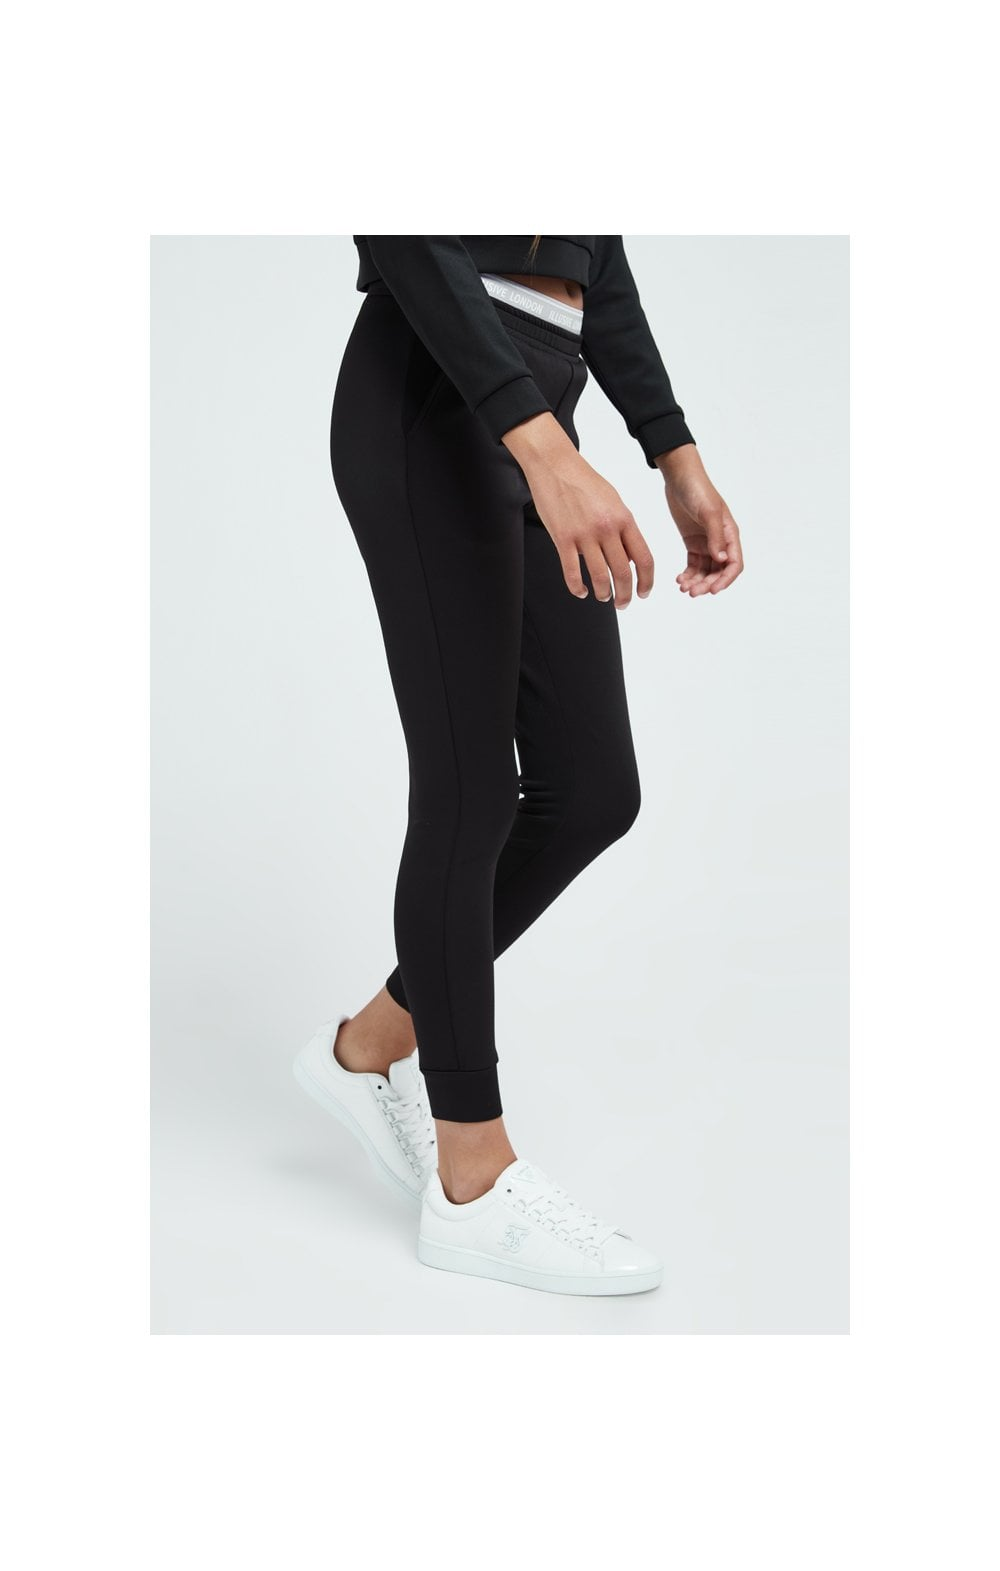 Load image into Gallery viewer, Illusive London Tape Track Pants - Black (3)